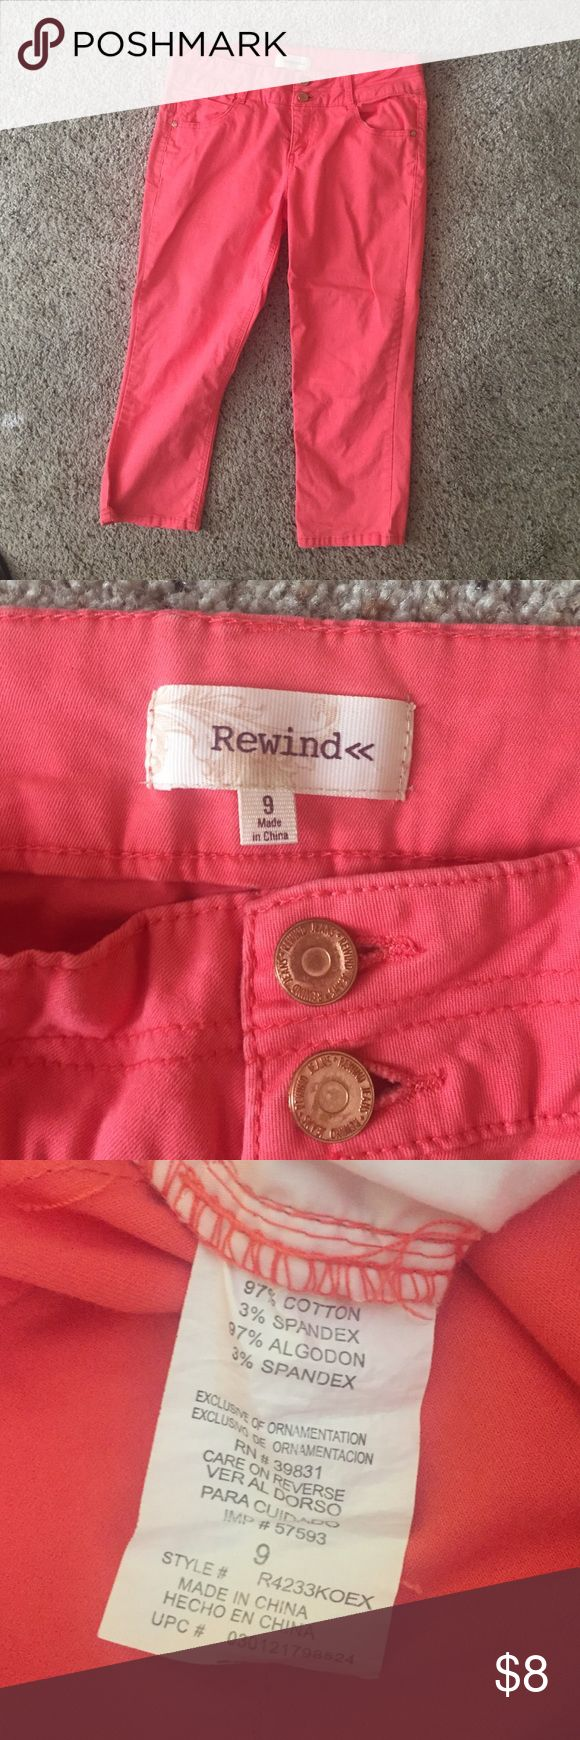 Rewind Coral Capri Pants Rewind size 9 Capri pants. Super cute and comfortable. Tummy slimming and butt lifting, beautiful coral color. Excellent used condition, only worn three times. Rewind Pants Capris